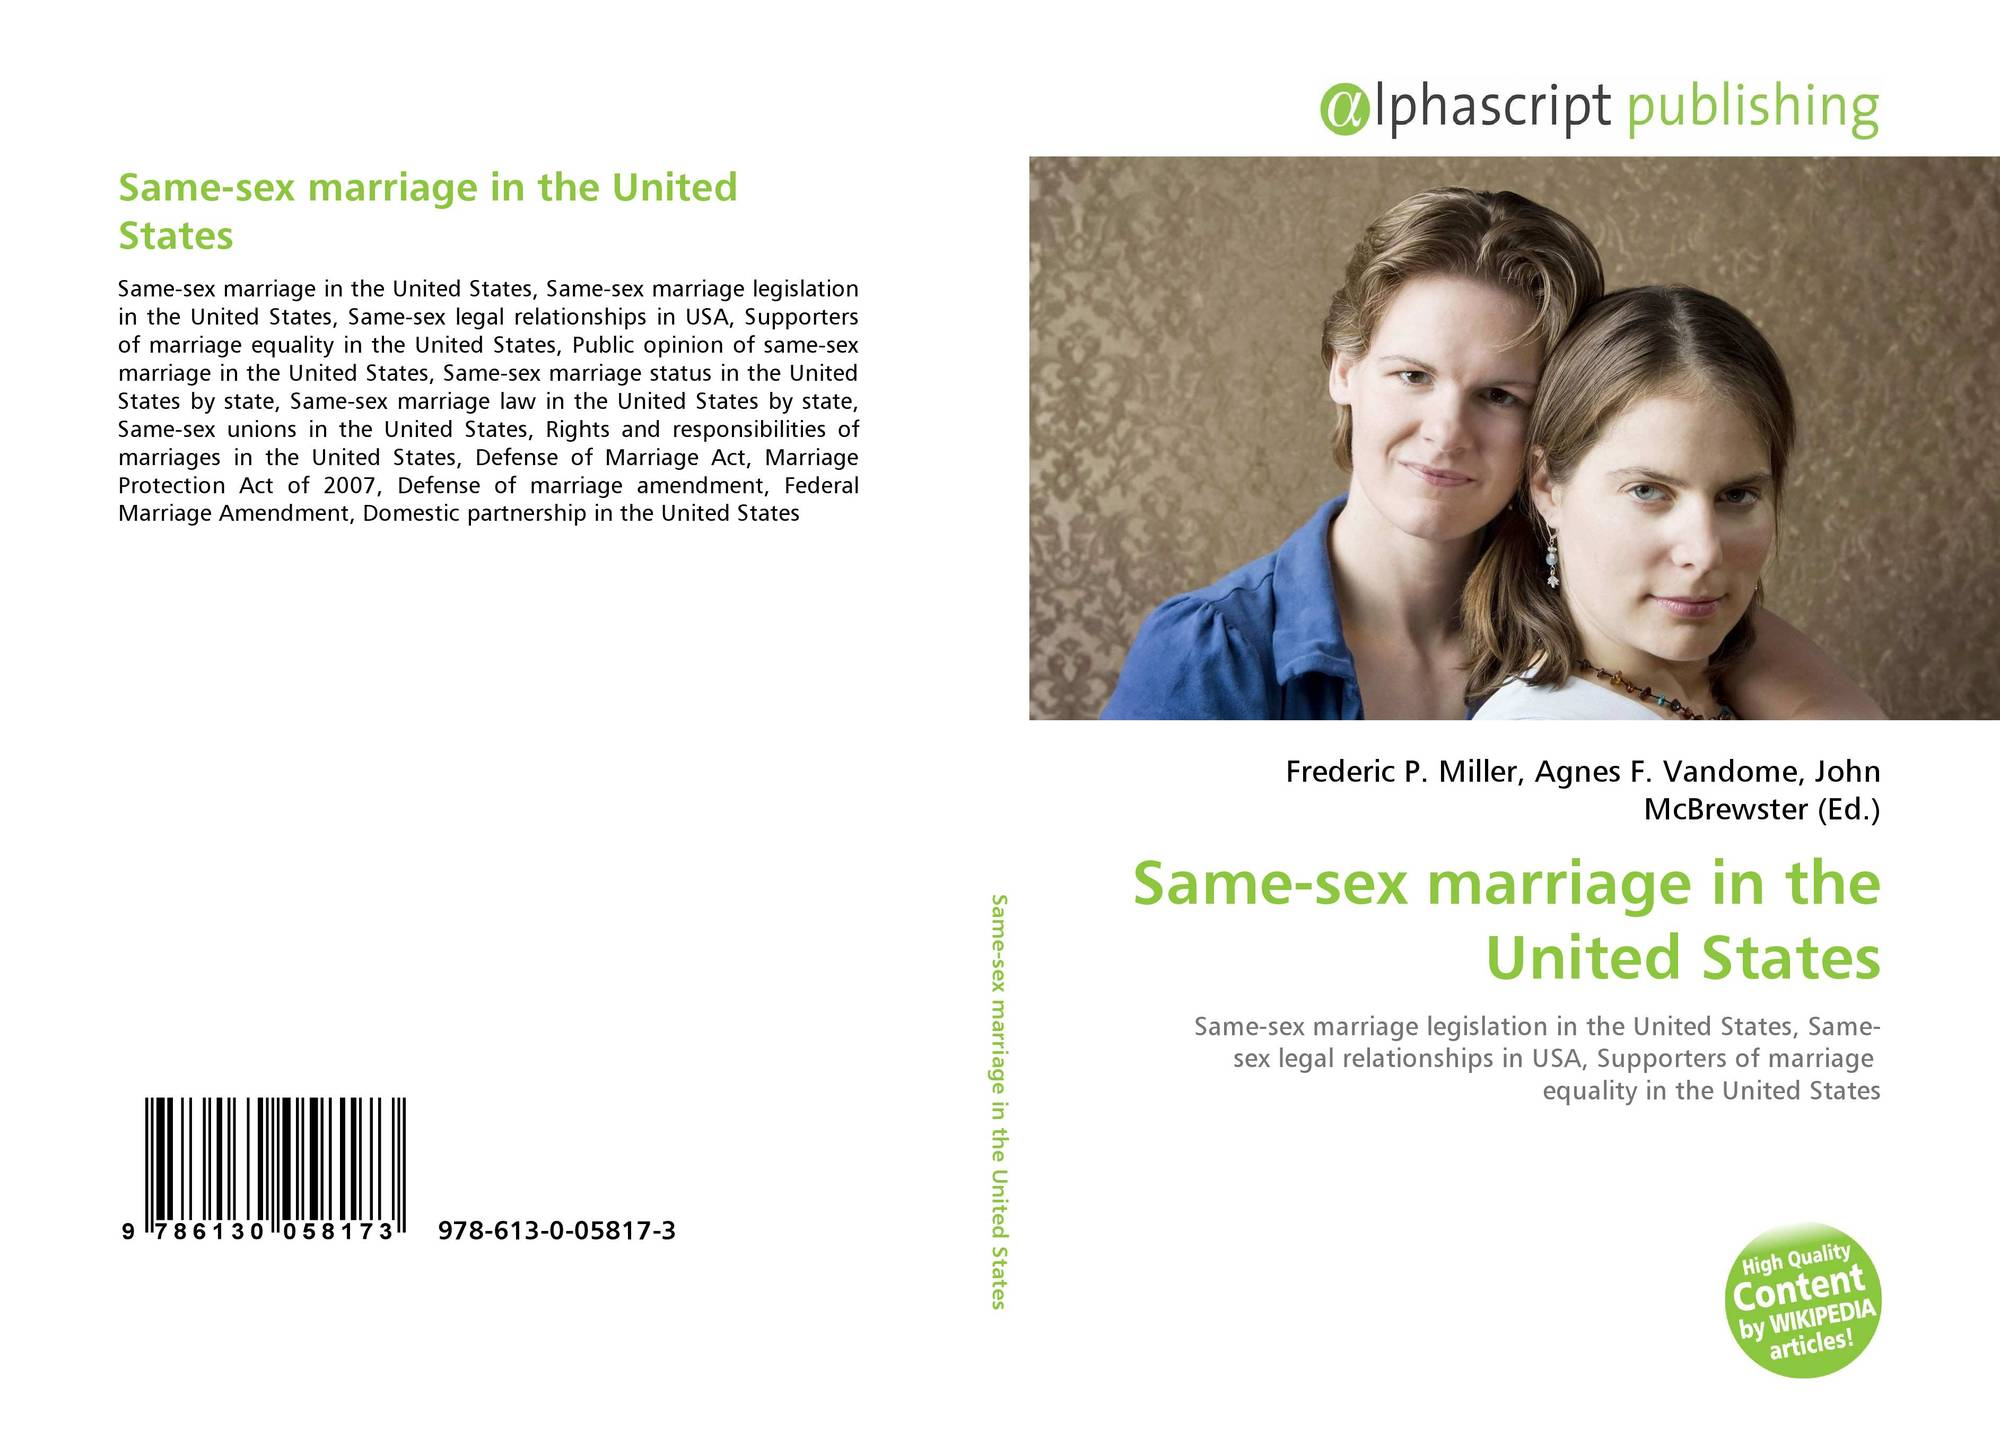 an argument against premarital sex in the united states Unlike most editing & proofreading services, we edit for everything: grammar, spelling, punctuation, idea flow, sentence structure, & more get started now.